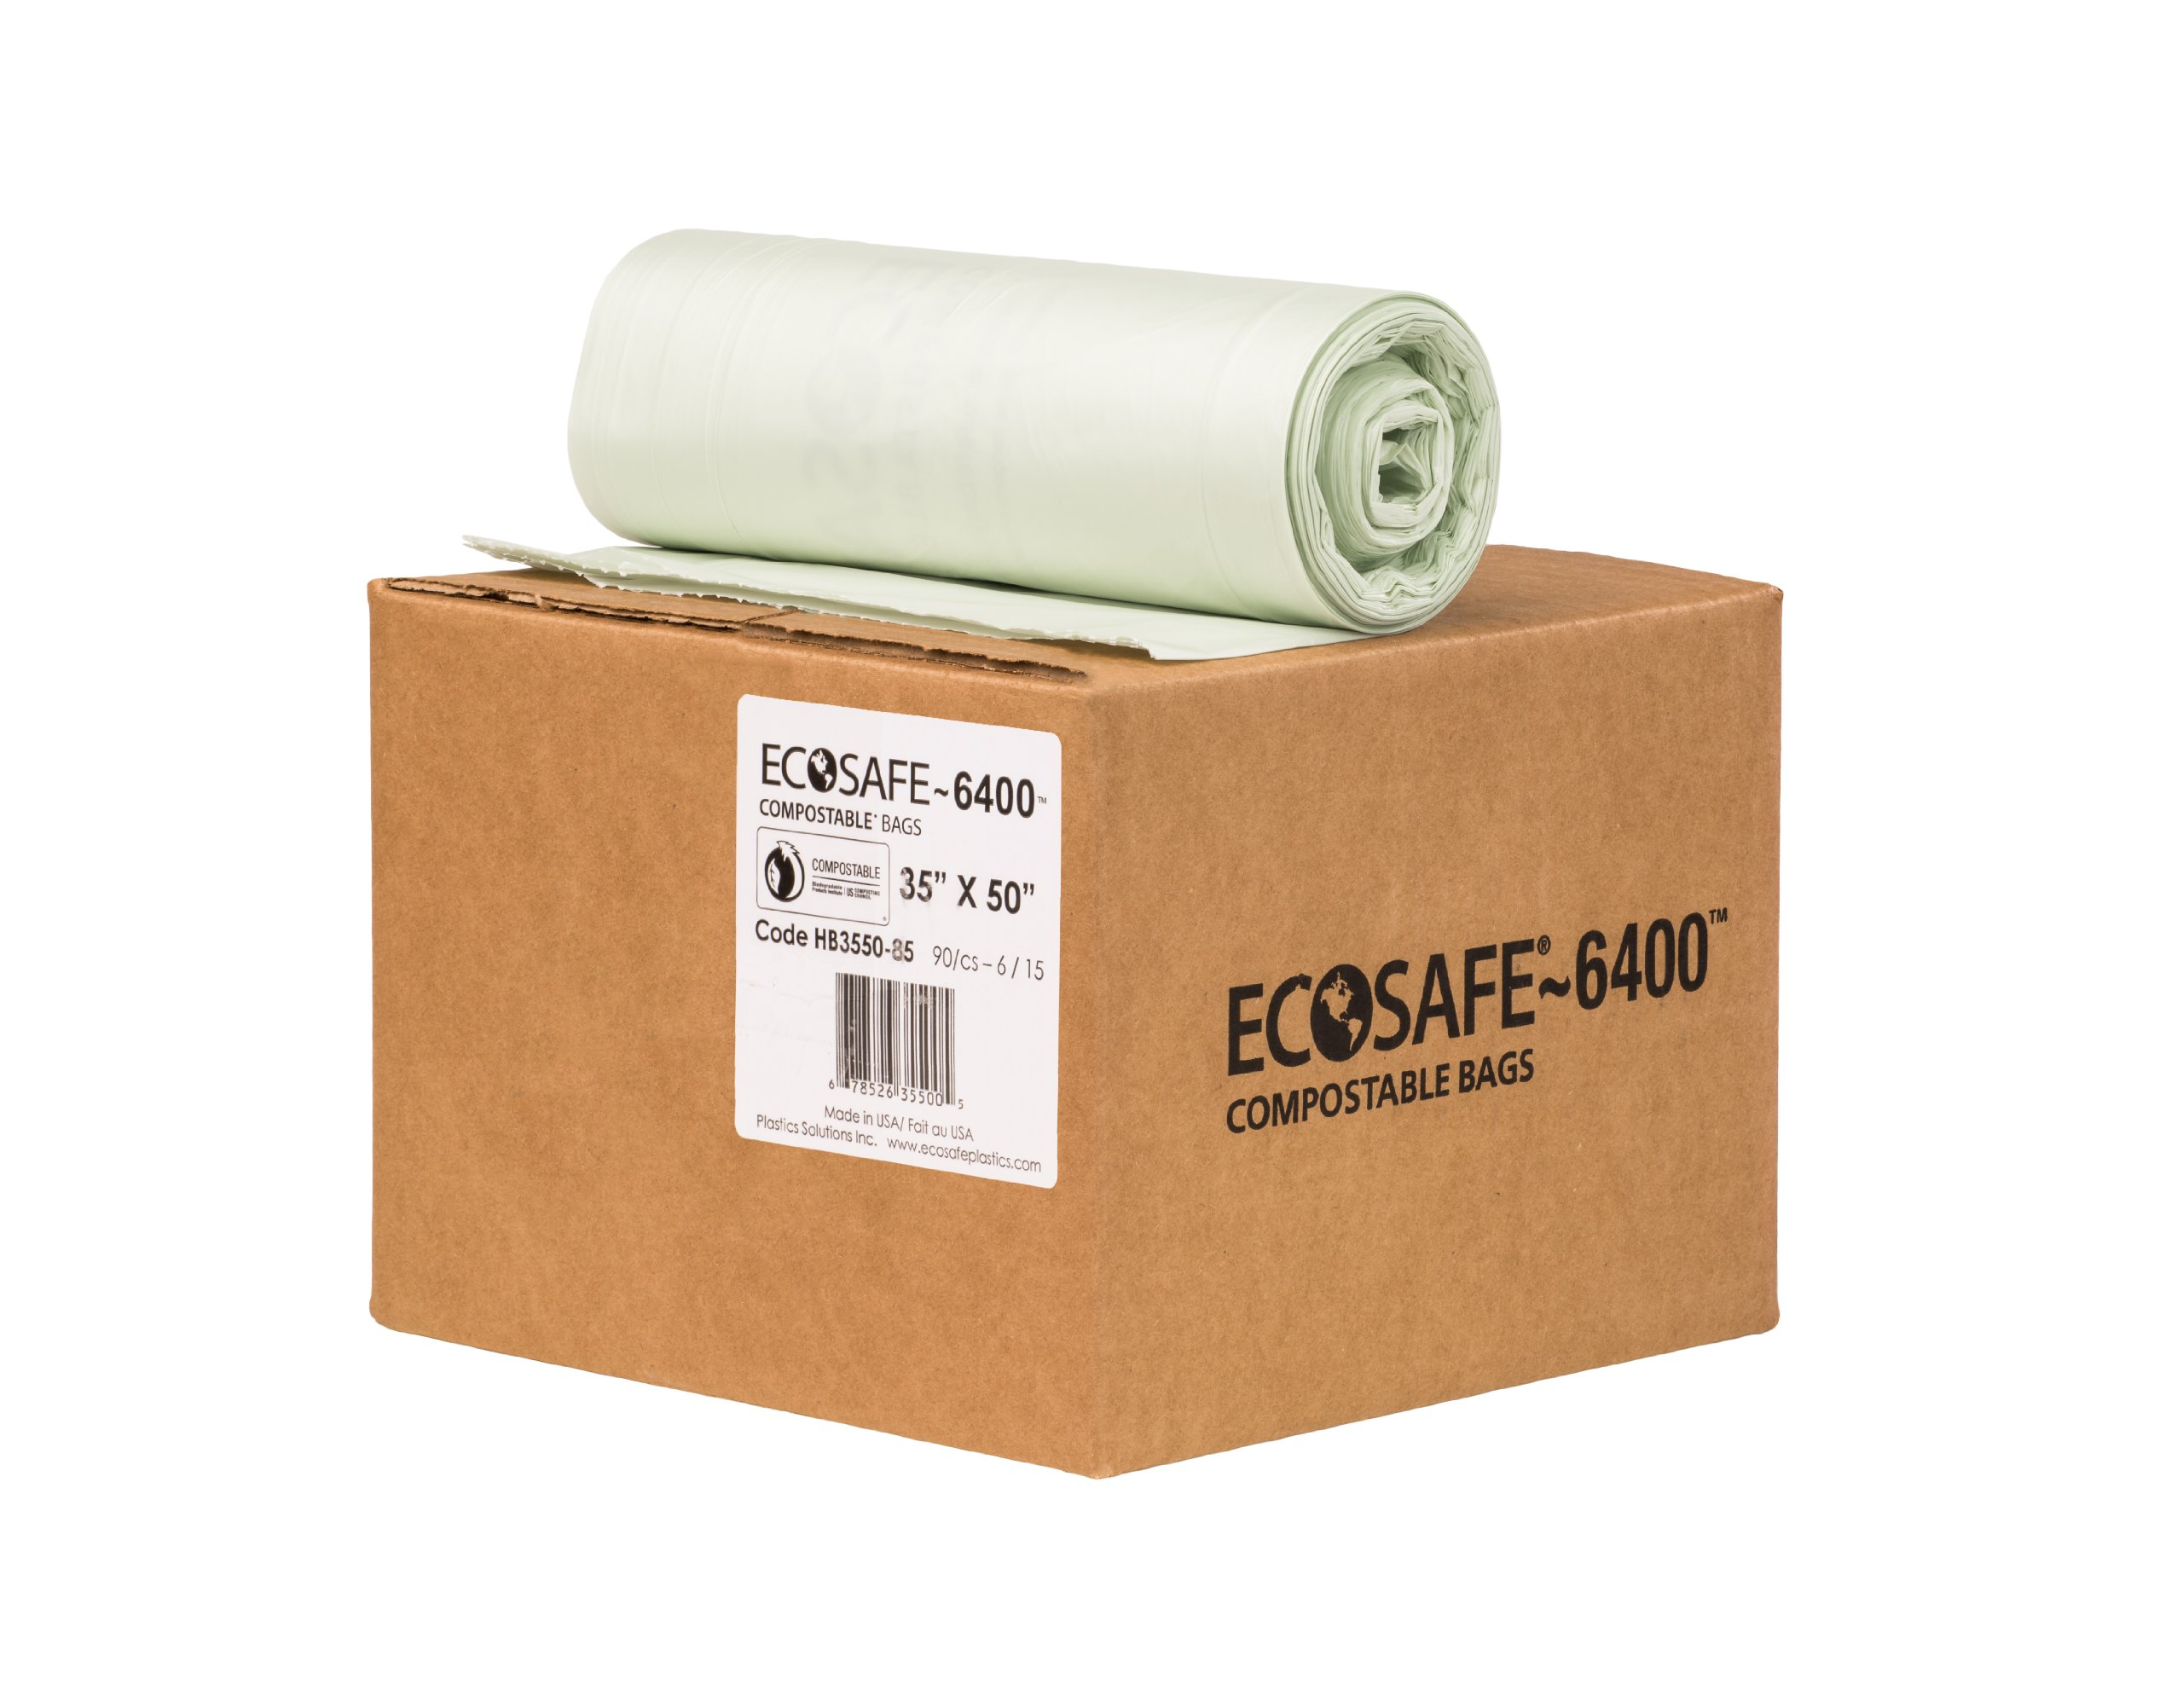 EcoSafe-6400 HB3550-85 Compostable Bag, Certified Compostable, 45-Gallon, Green (Pack of 90)